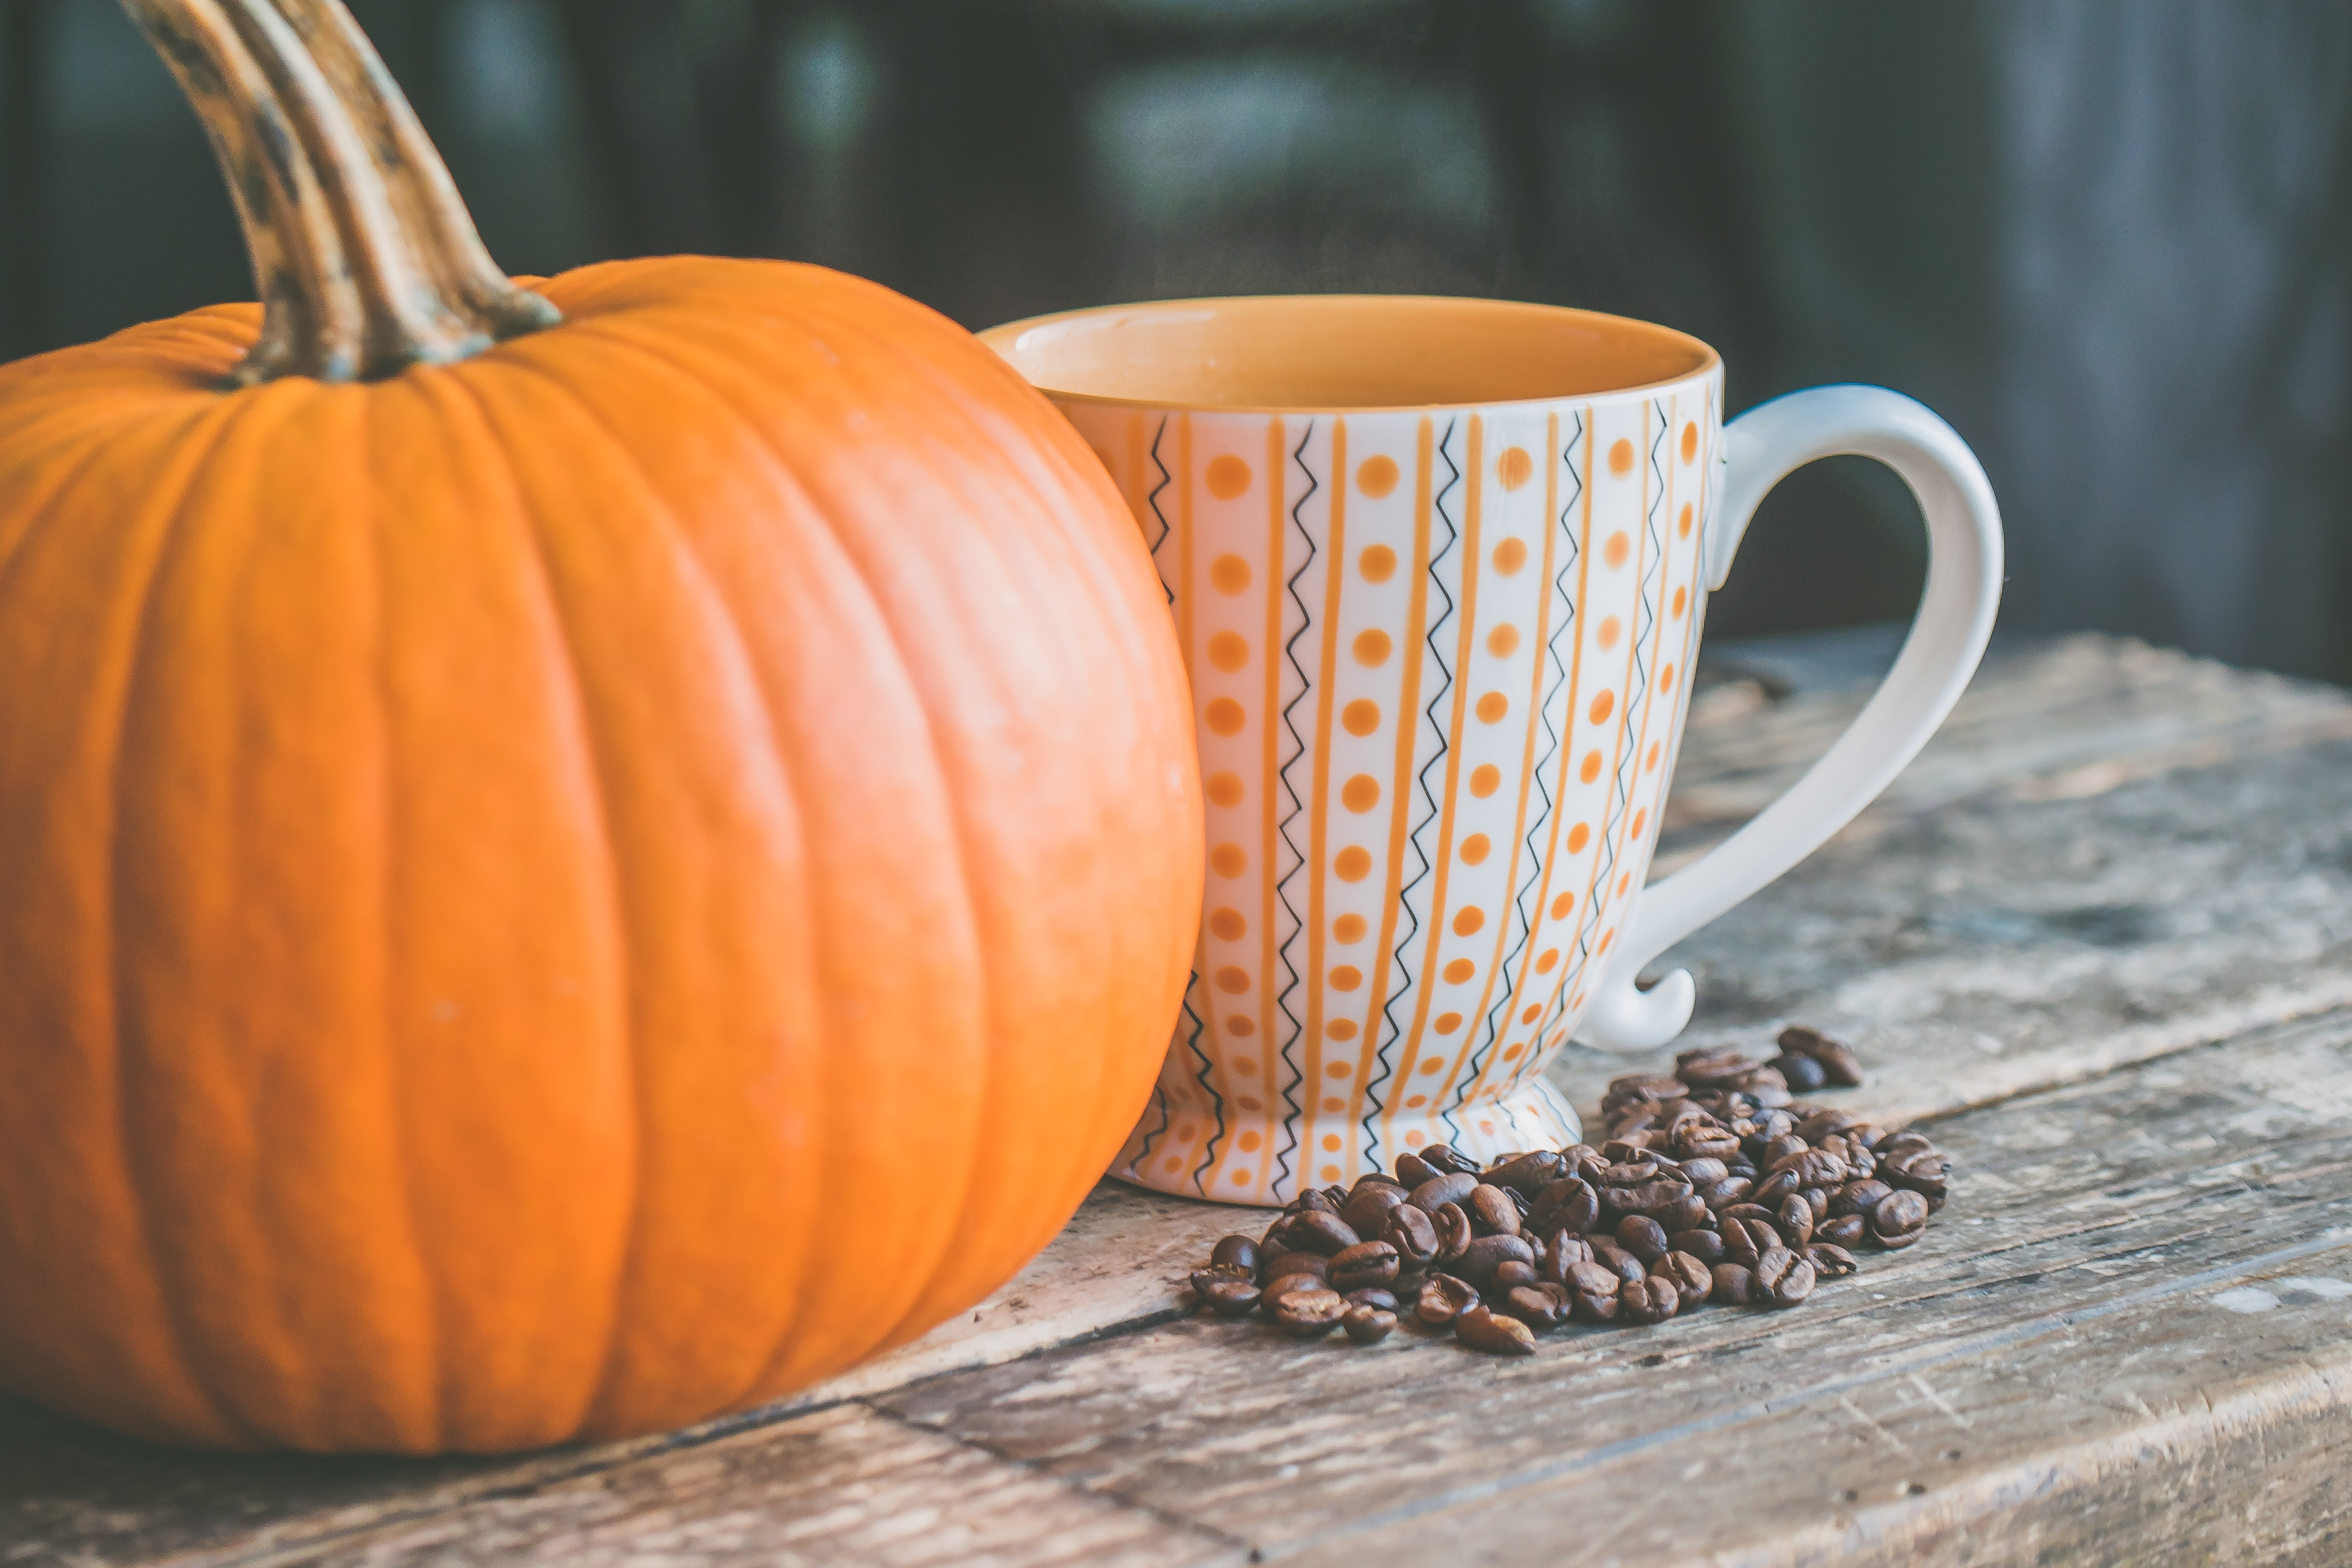 pumpkin-background-coffee beans-mug